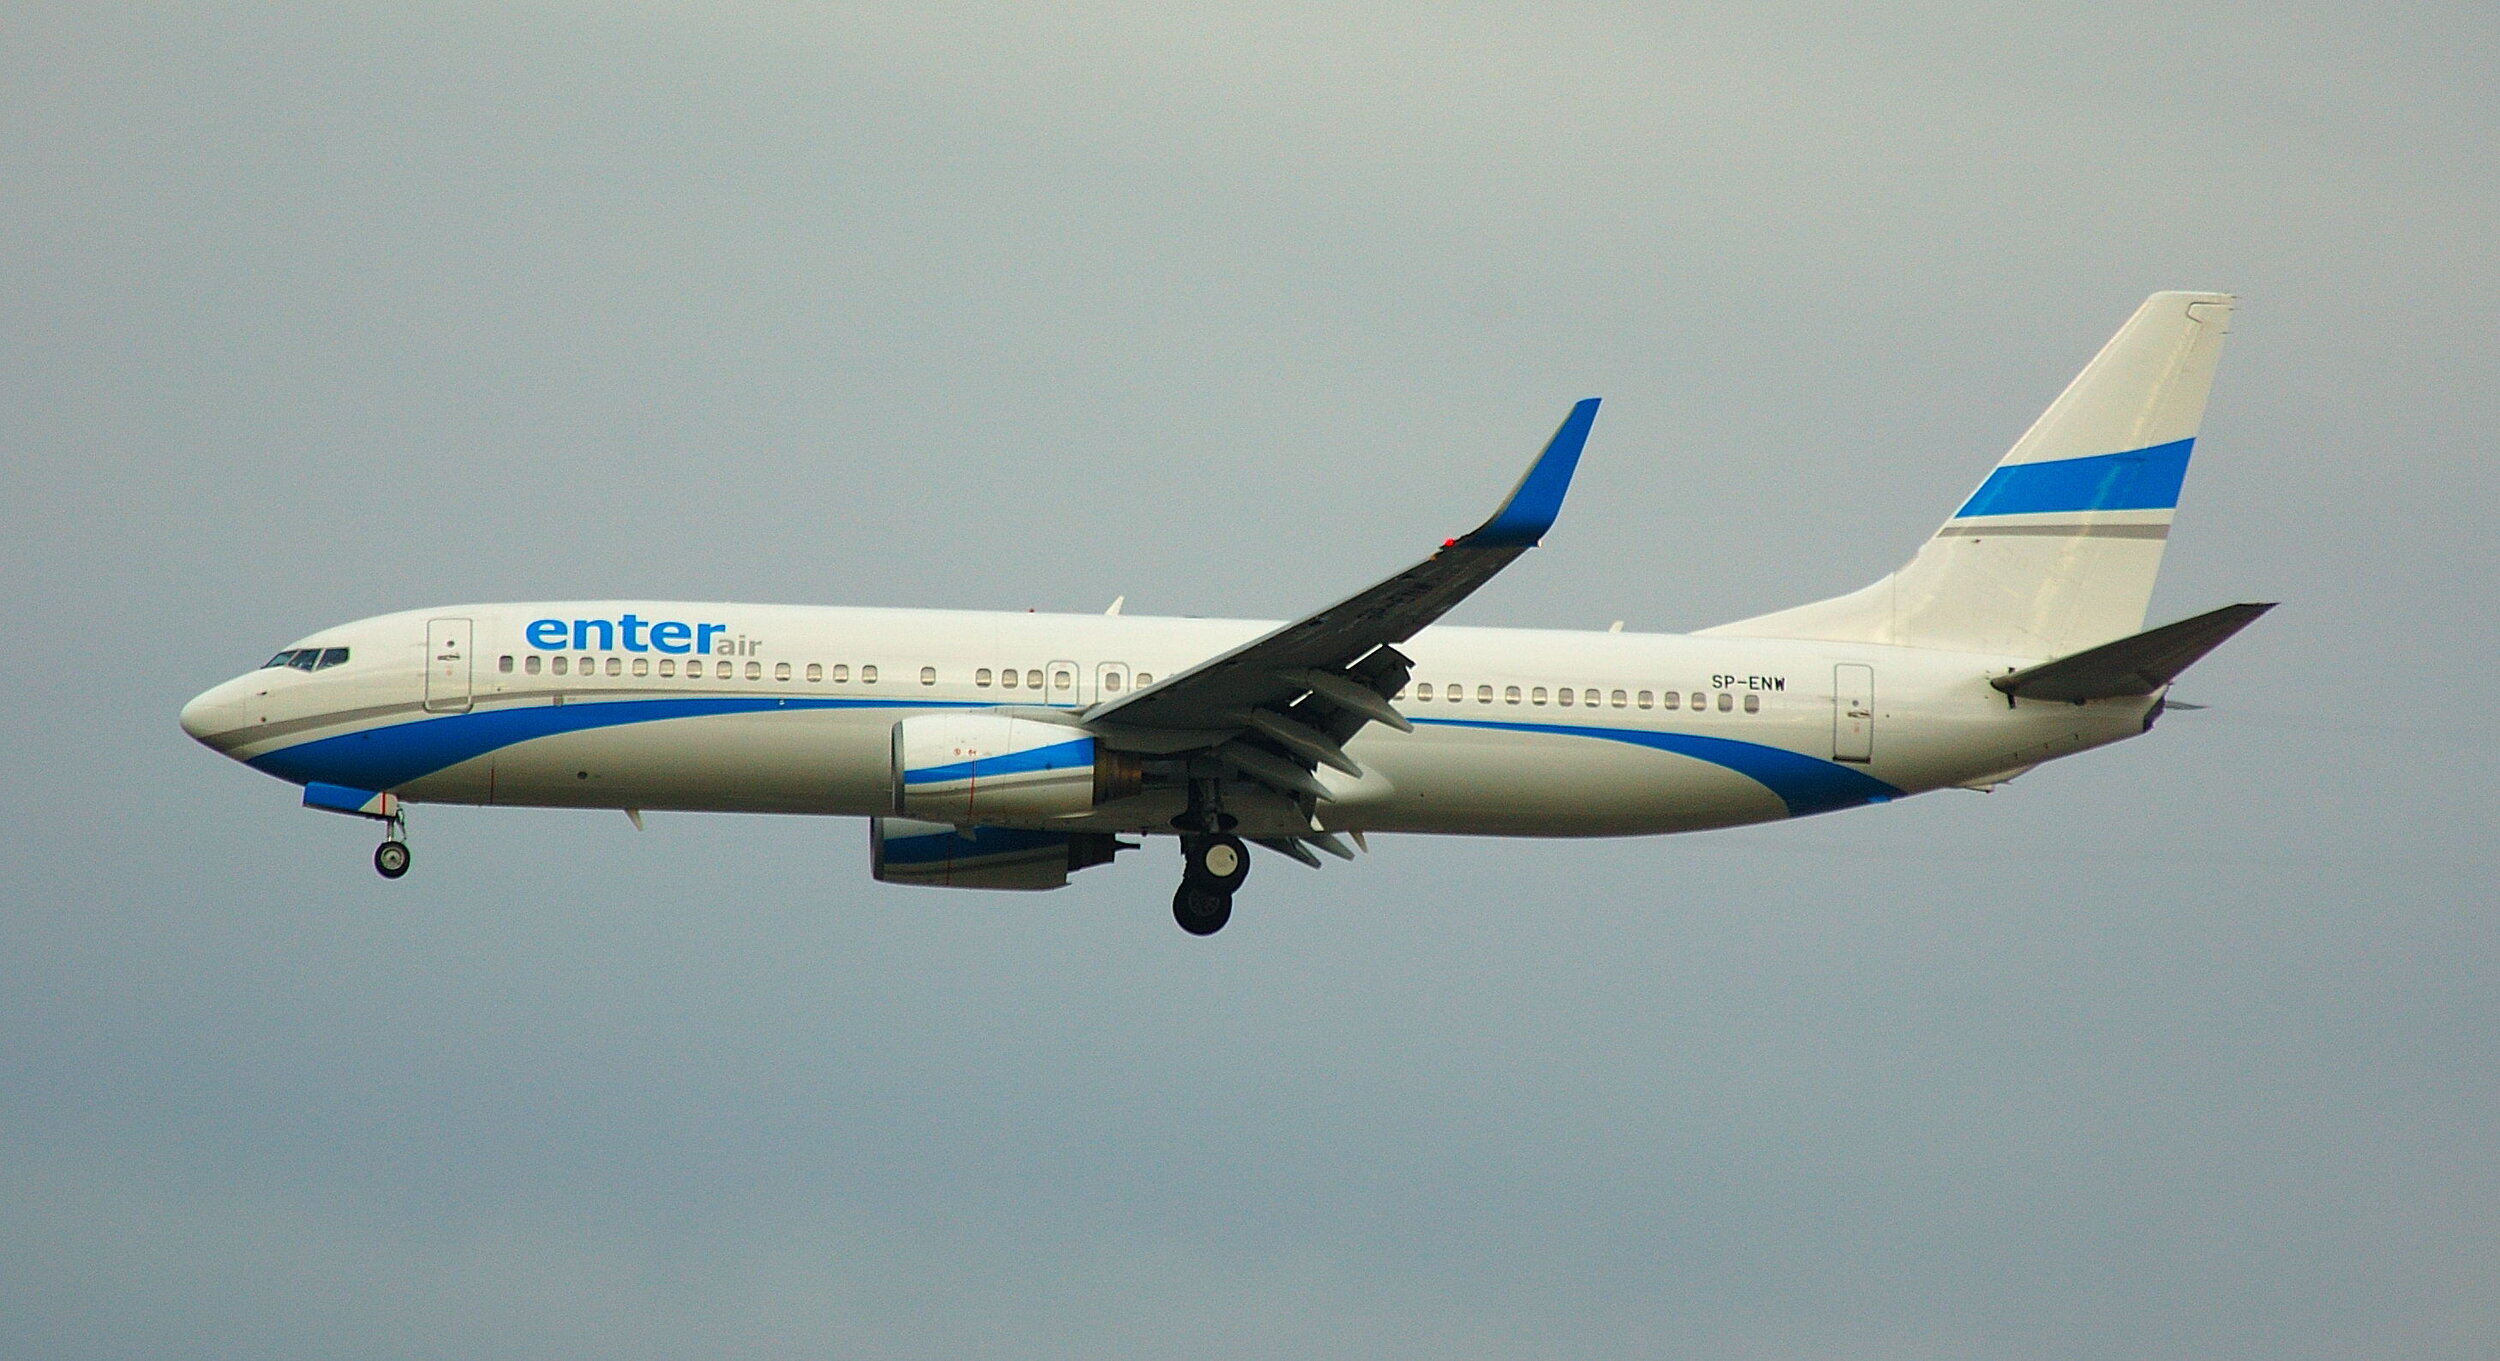 Enter air B737-800's were seen in abundance at Manchester today (22nd October) transporting Atalanta fans for the UEFA Champions League game with Man City. SP-ENW was photographed by Paul Rowland.